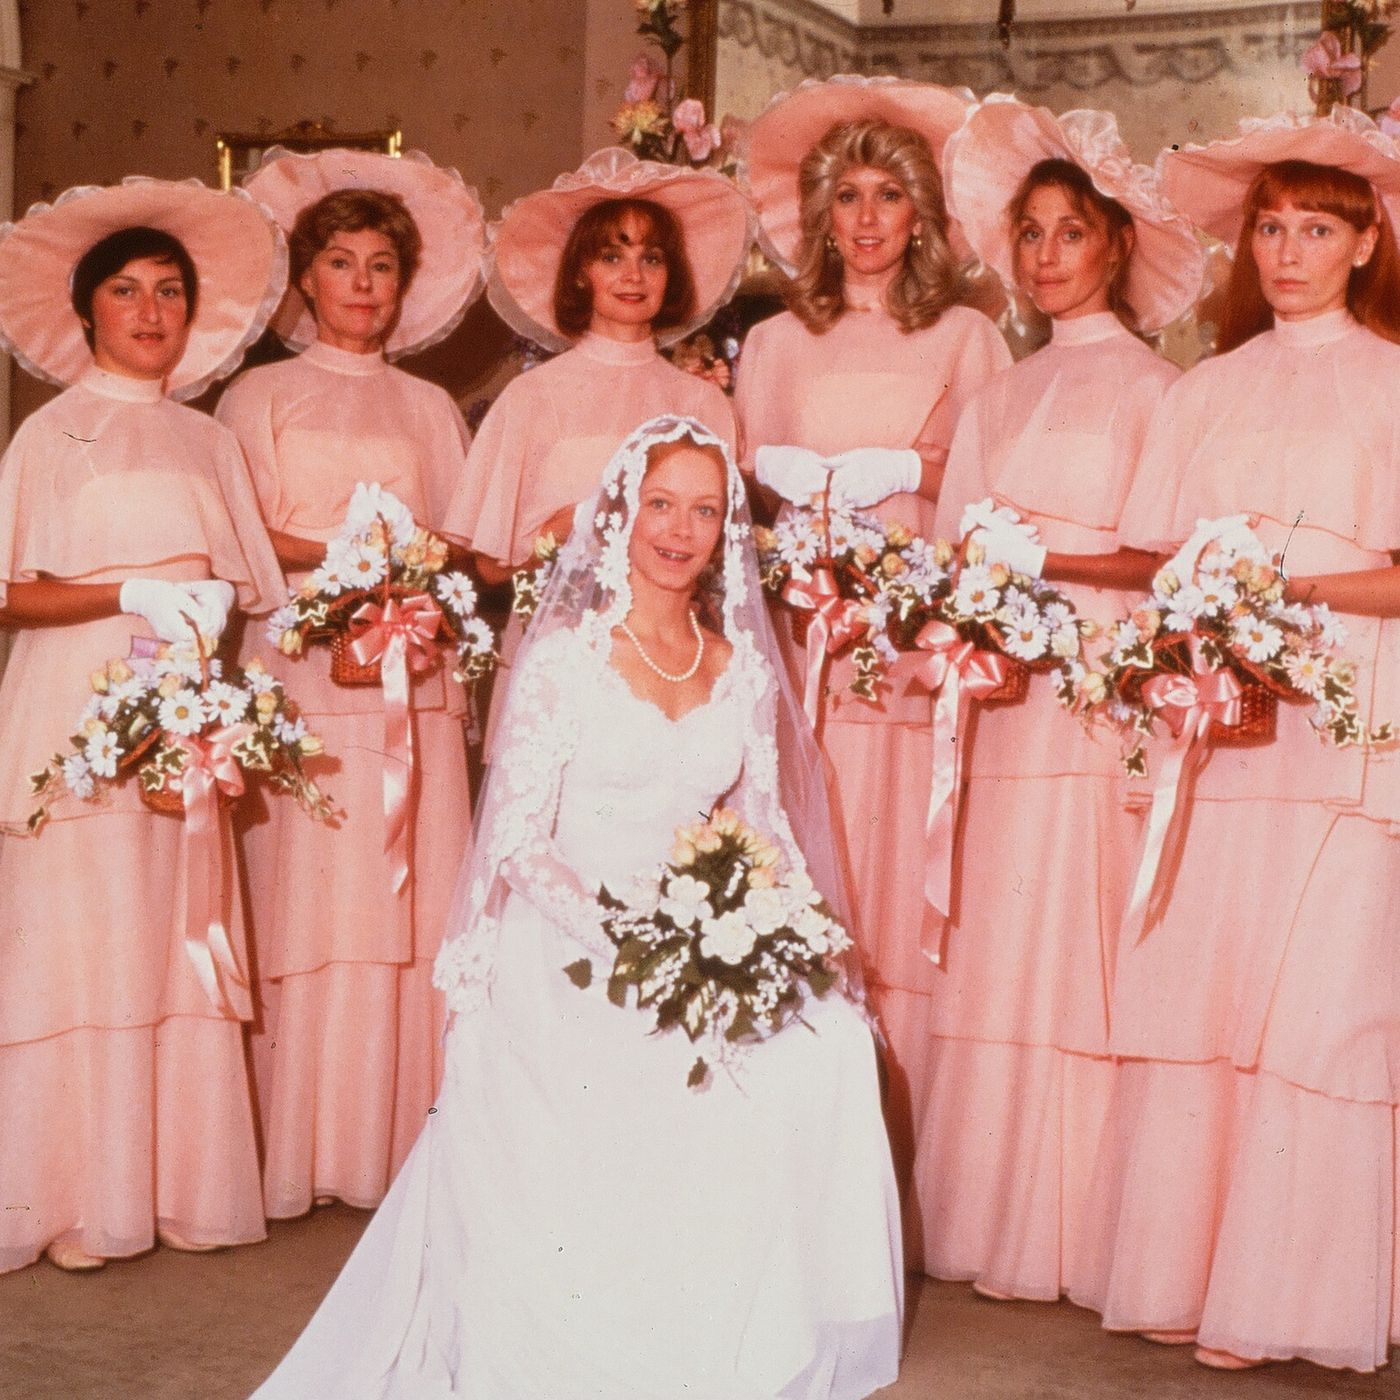 A Cultural History of Ugly Bridesmaids Dresses - Racked